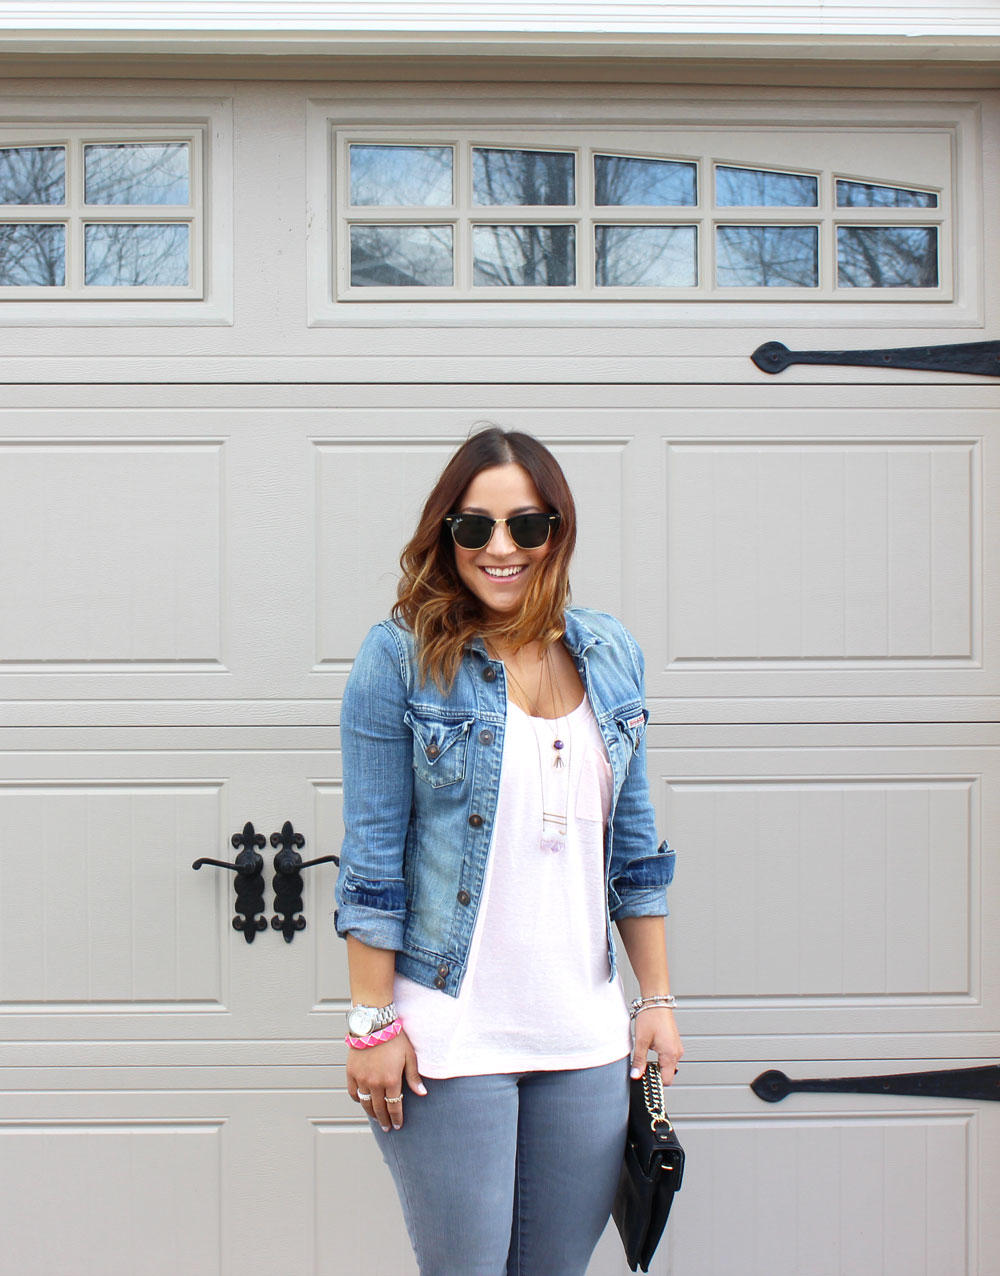 Canadian fashion blogger, Jackie Goldhar, shows you how to modernize the Canadian Tuxedo